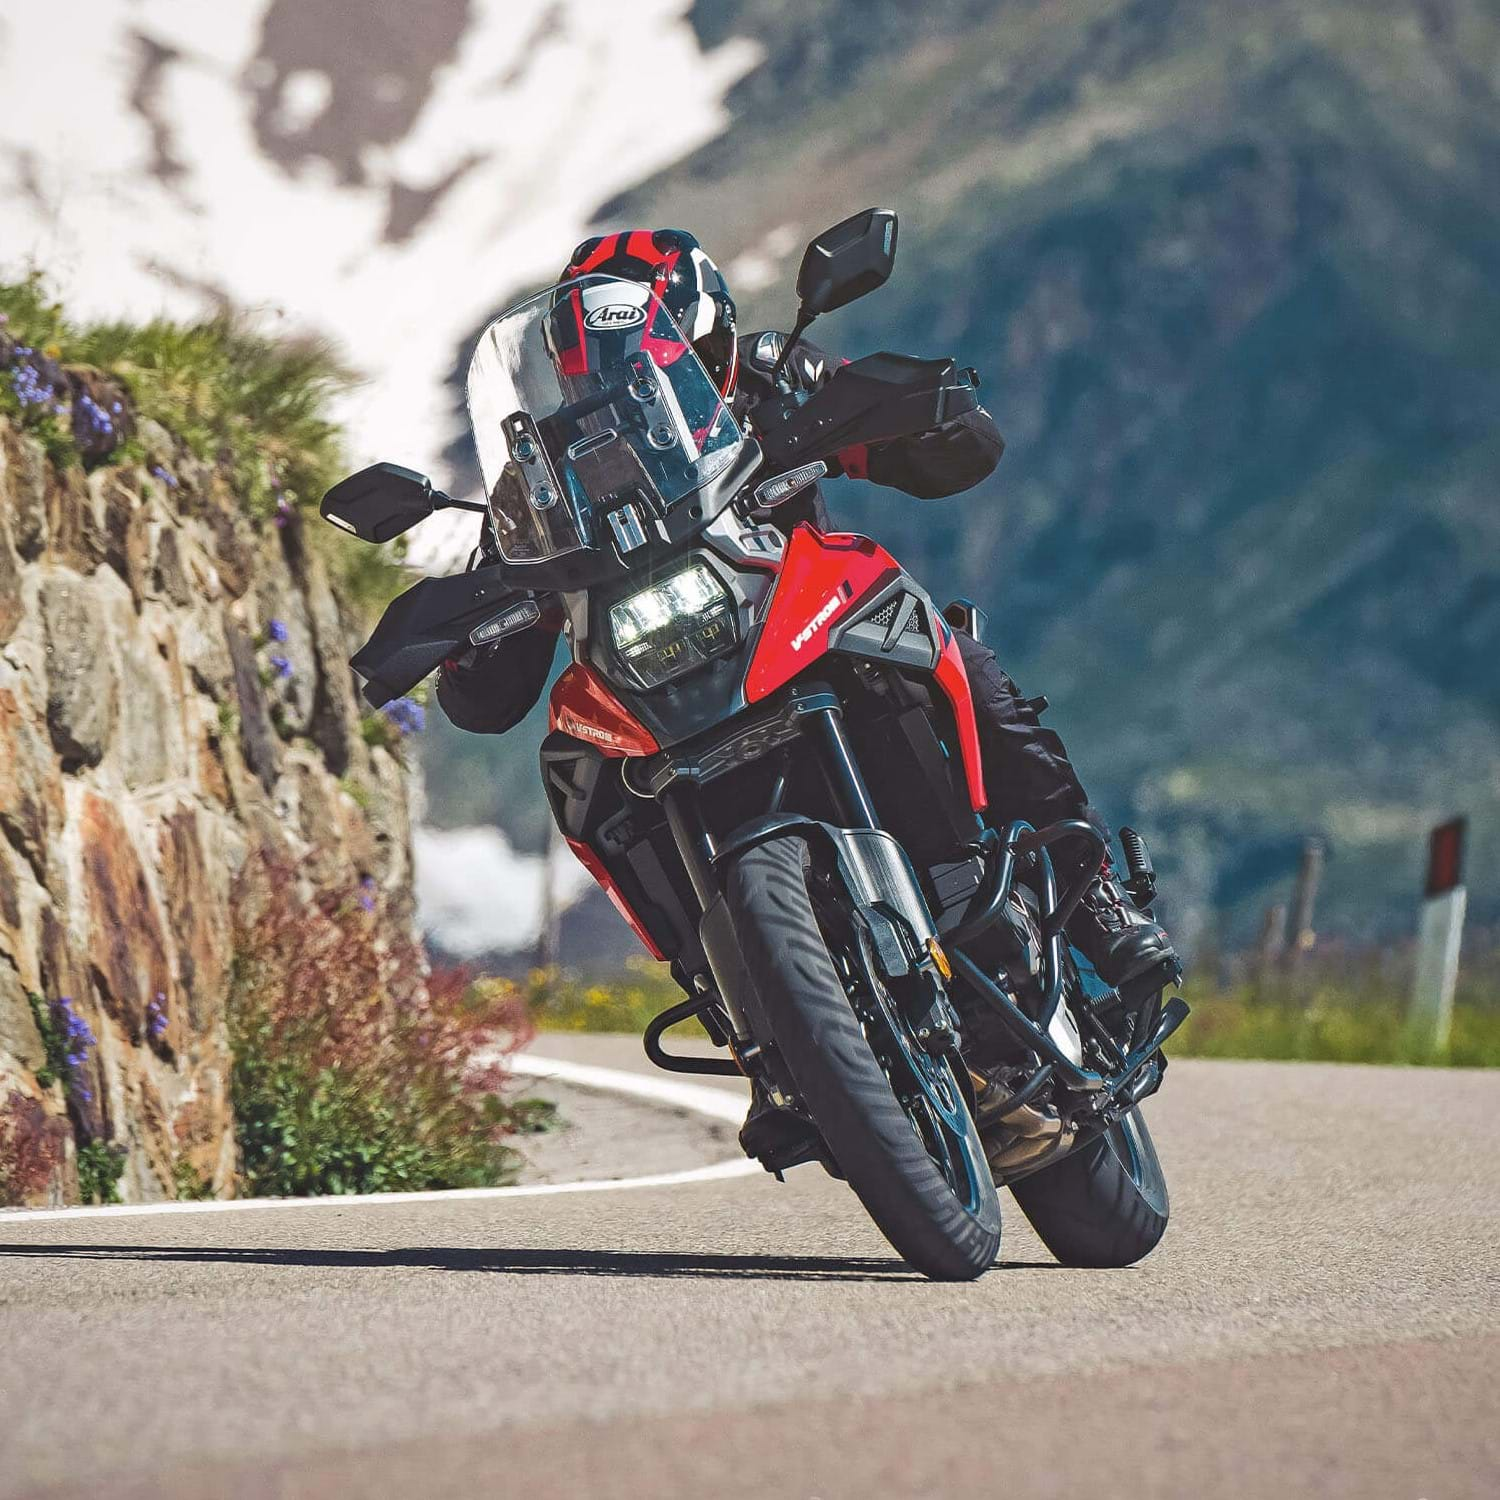 Suzuki V-Strom 1050XT Orange and White cornering on a mountain road. The Master of Adventure, the best all round adventure bike